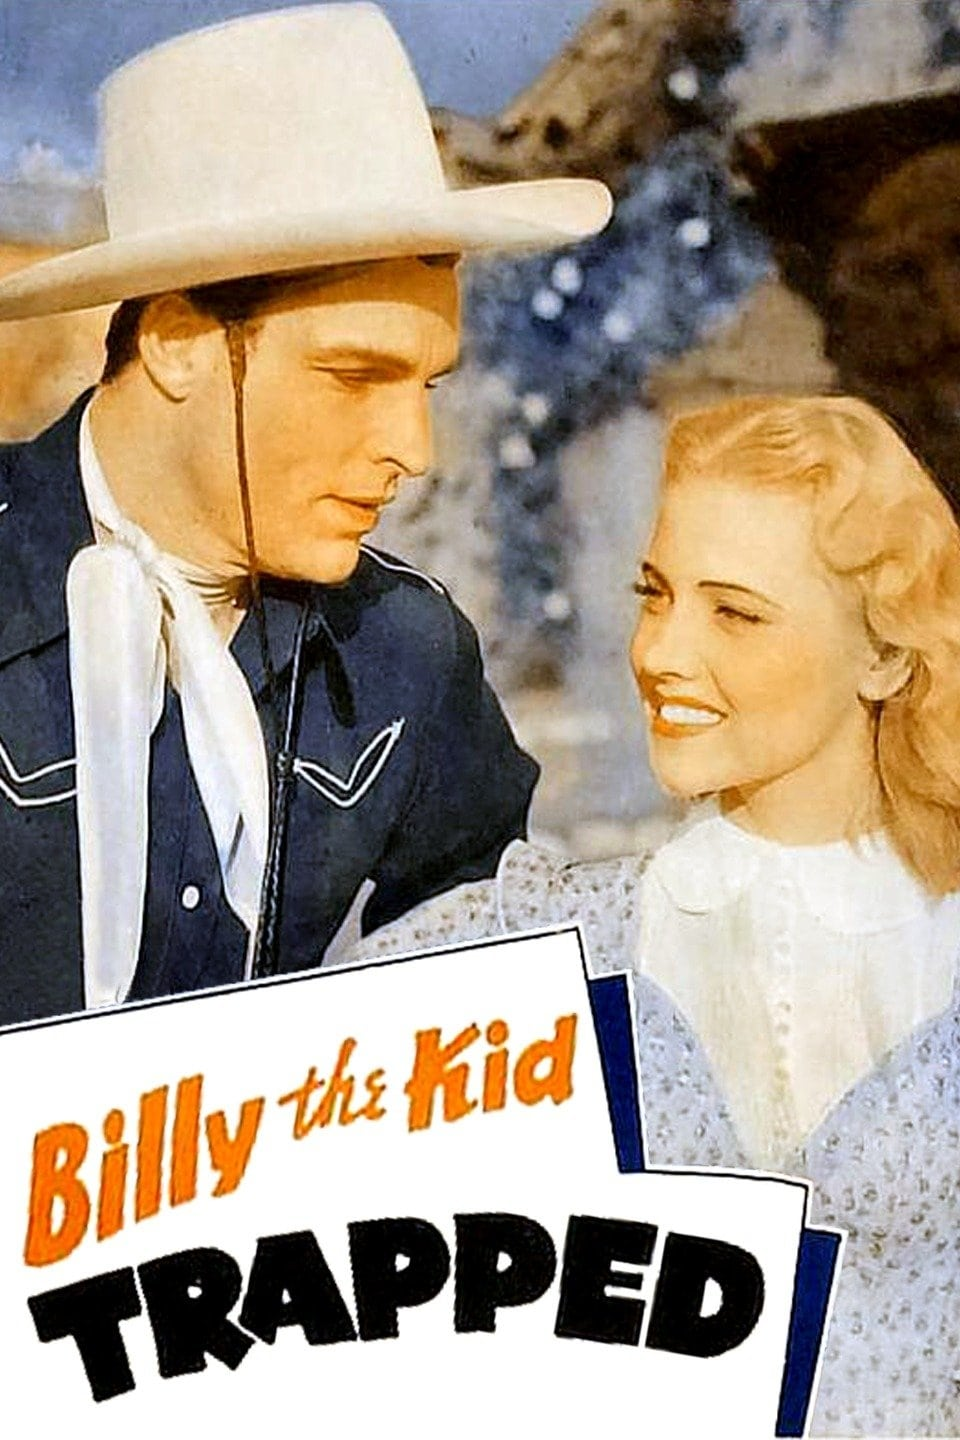 Billy the Kid Trapped on FREECABLE TV